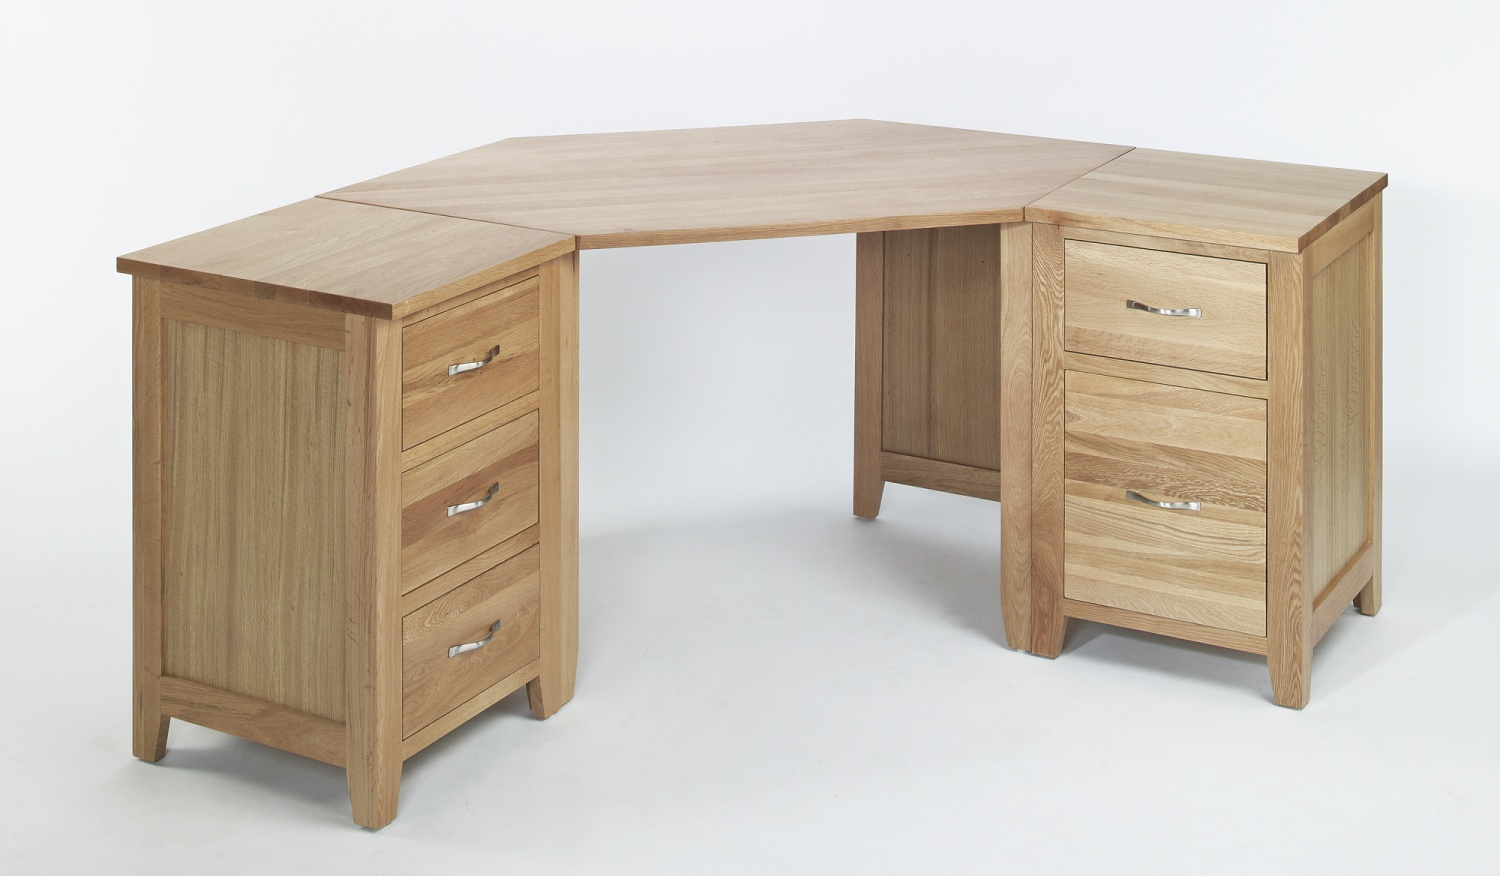 Compton solid oak furniture corner office PC computer desk | eBay